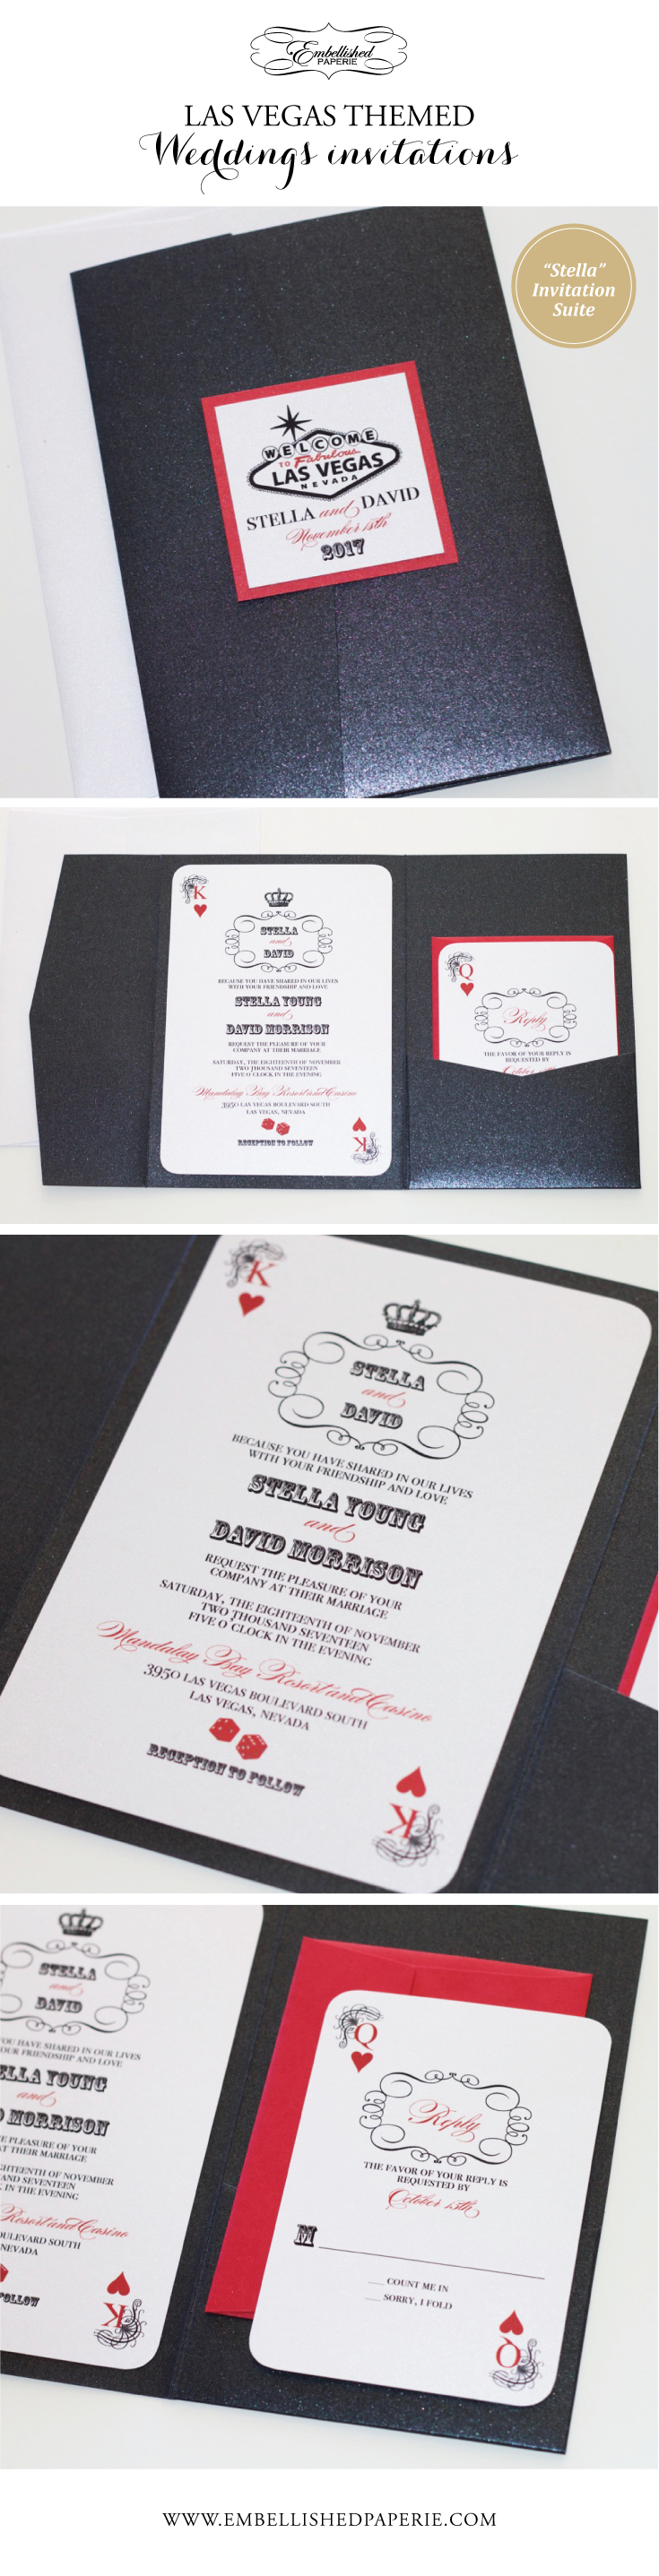 Las Vegas Wedding Invitation, Casino Invitation, Playing card ...